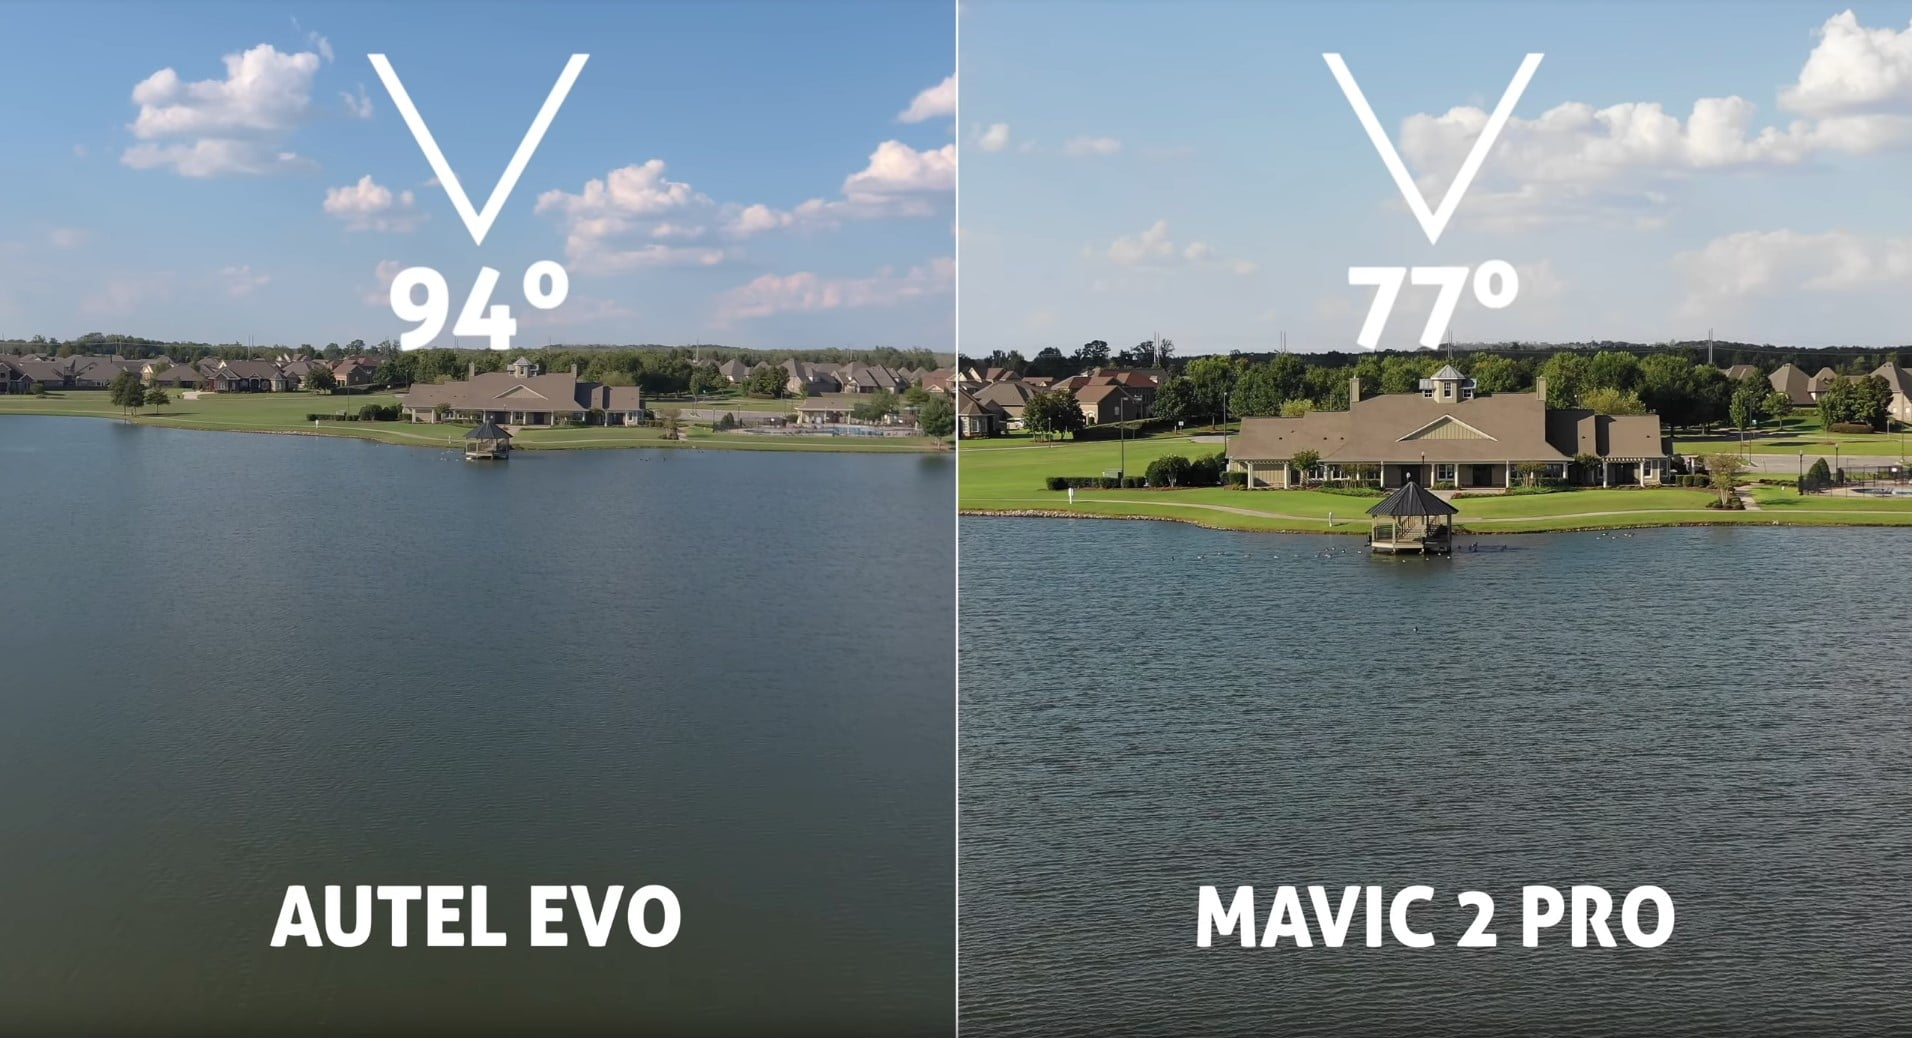 autel evo and mavic 2 field of view